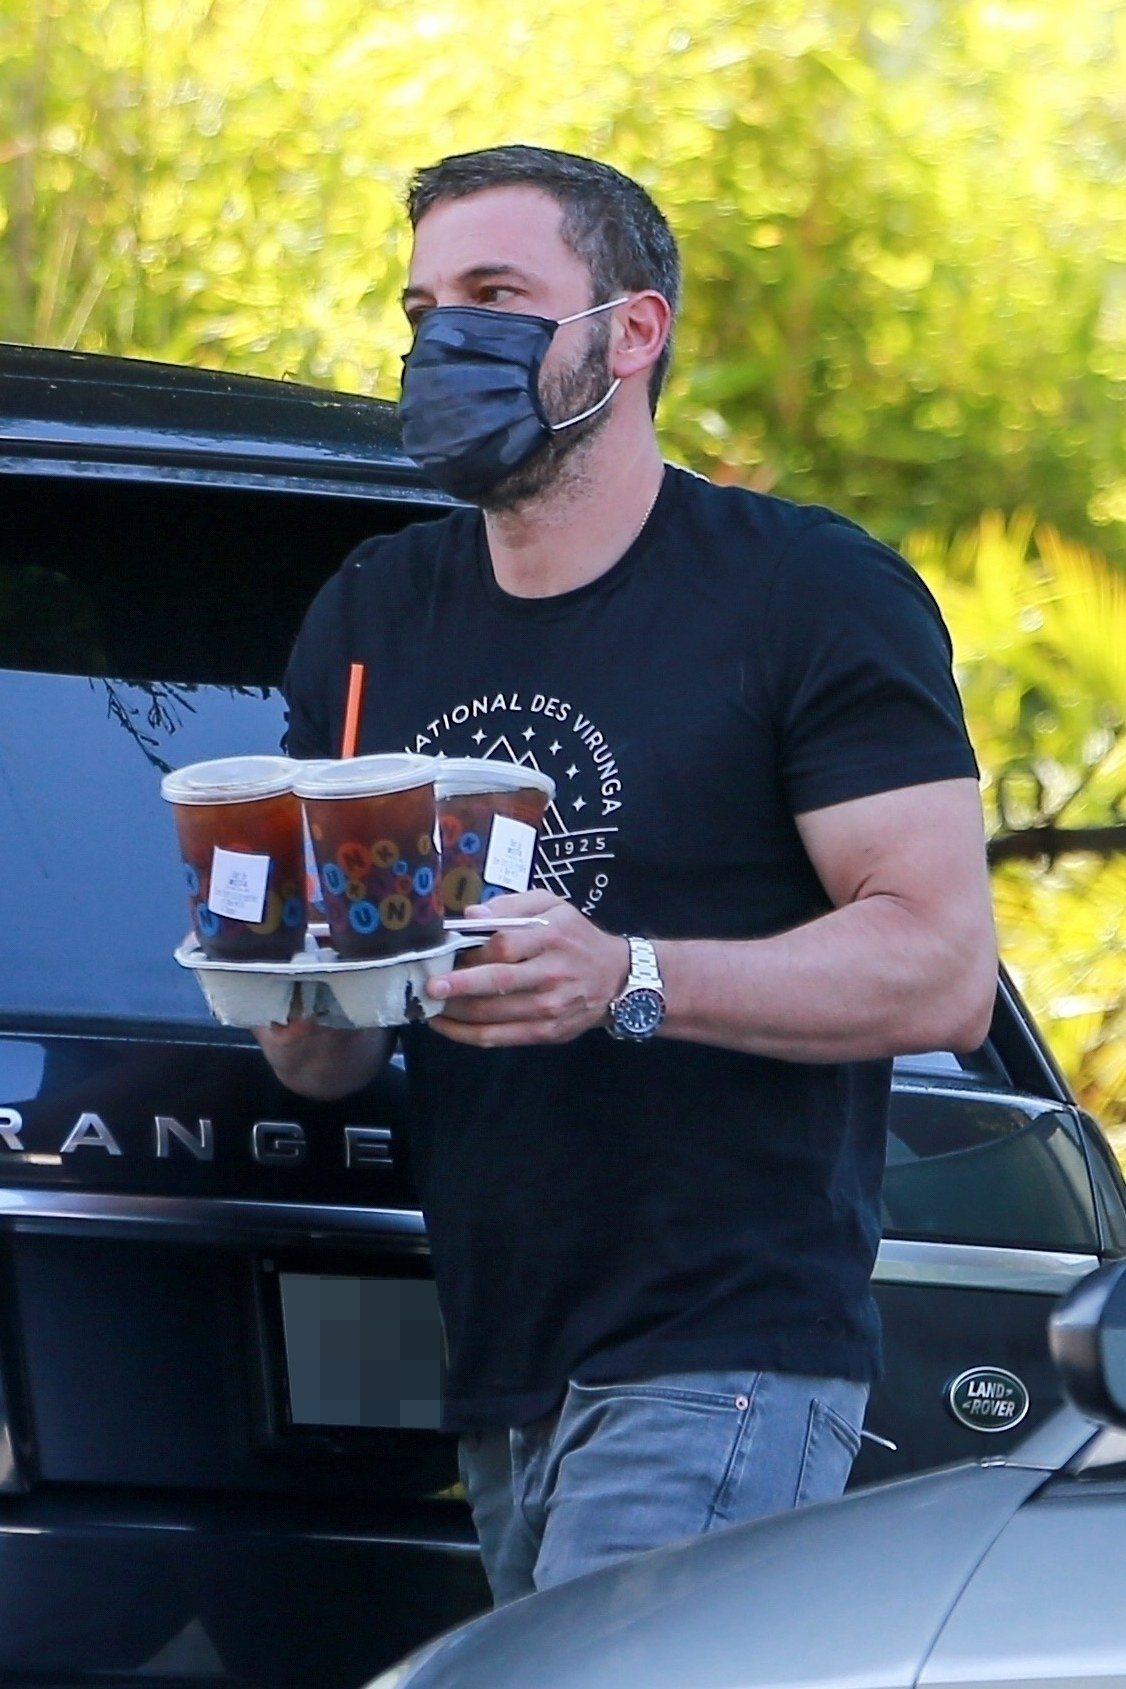 Ben walks, while wearing a face mask, and carries ice beverages in a to-go carrier